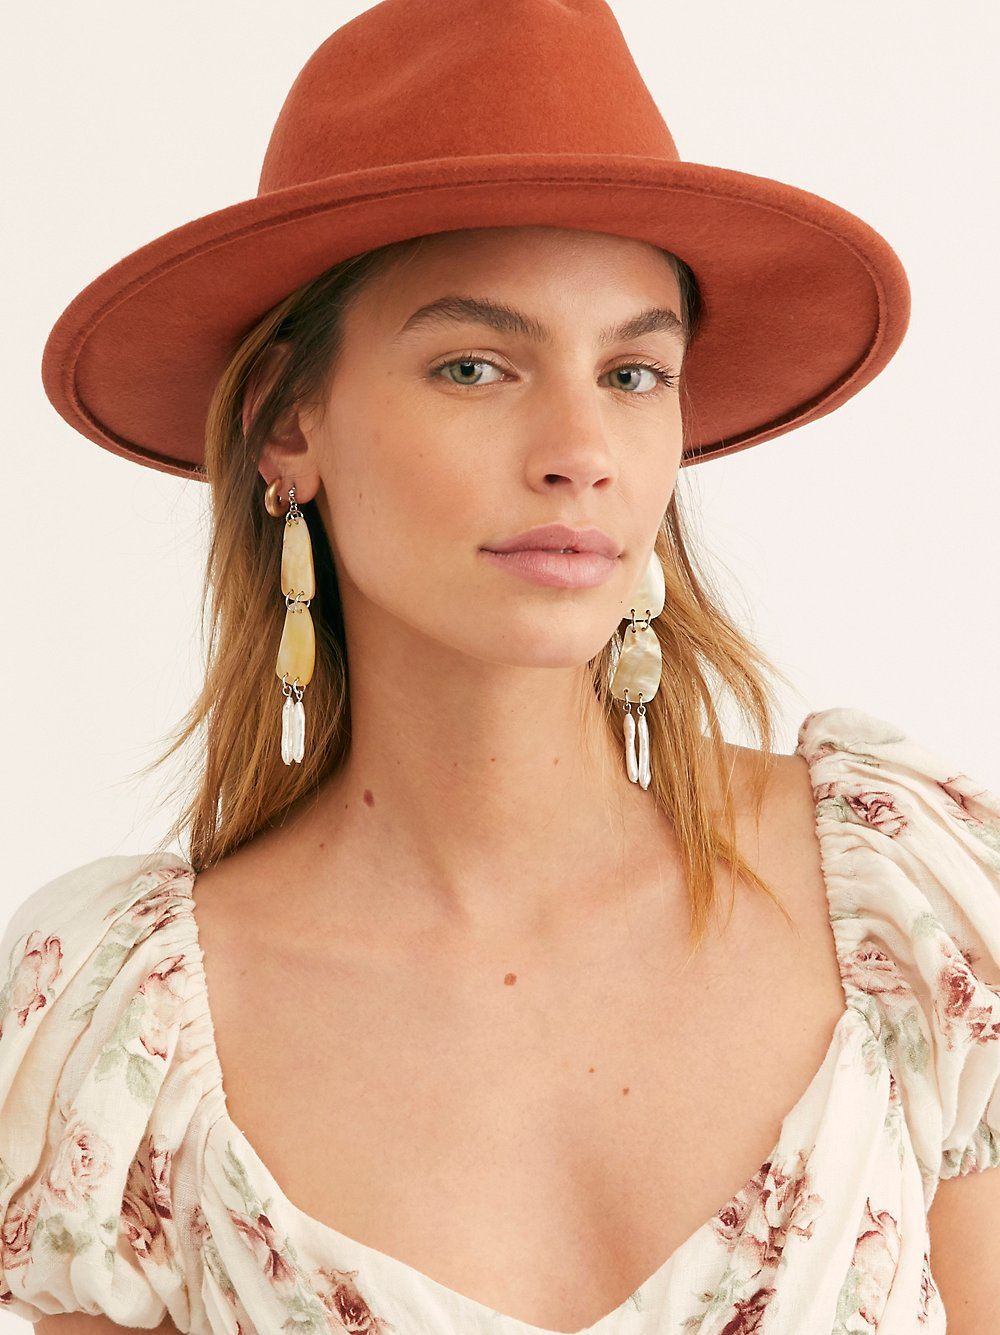 17db174103a3 15 Best Summer Hats 2019 - Stylish Summer Hats for Women